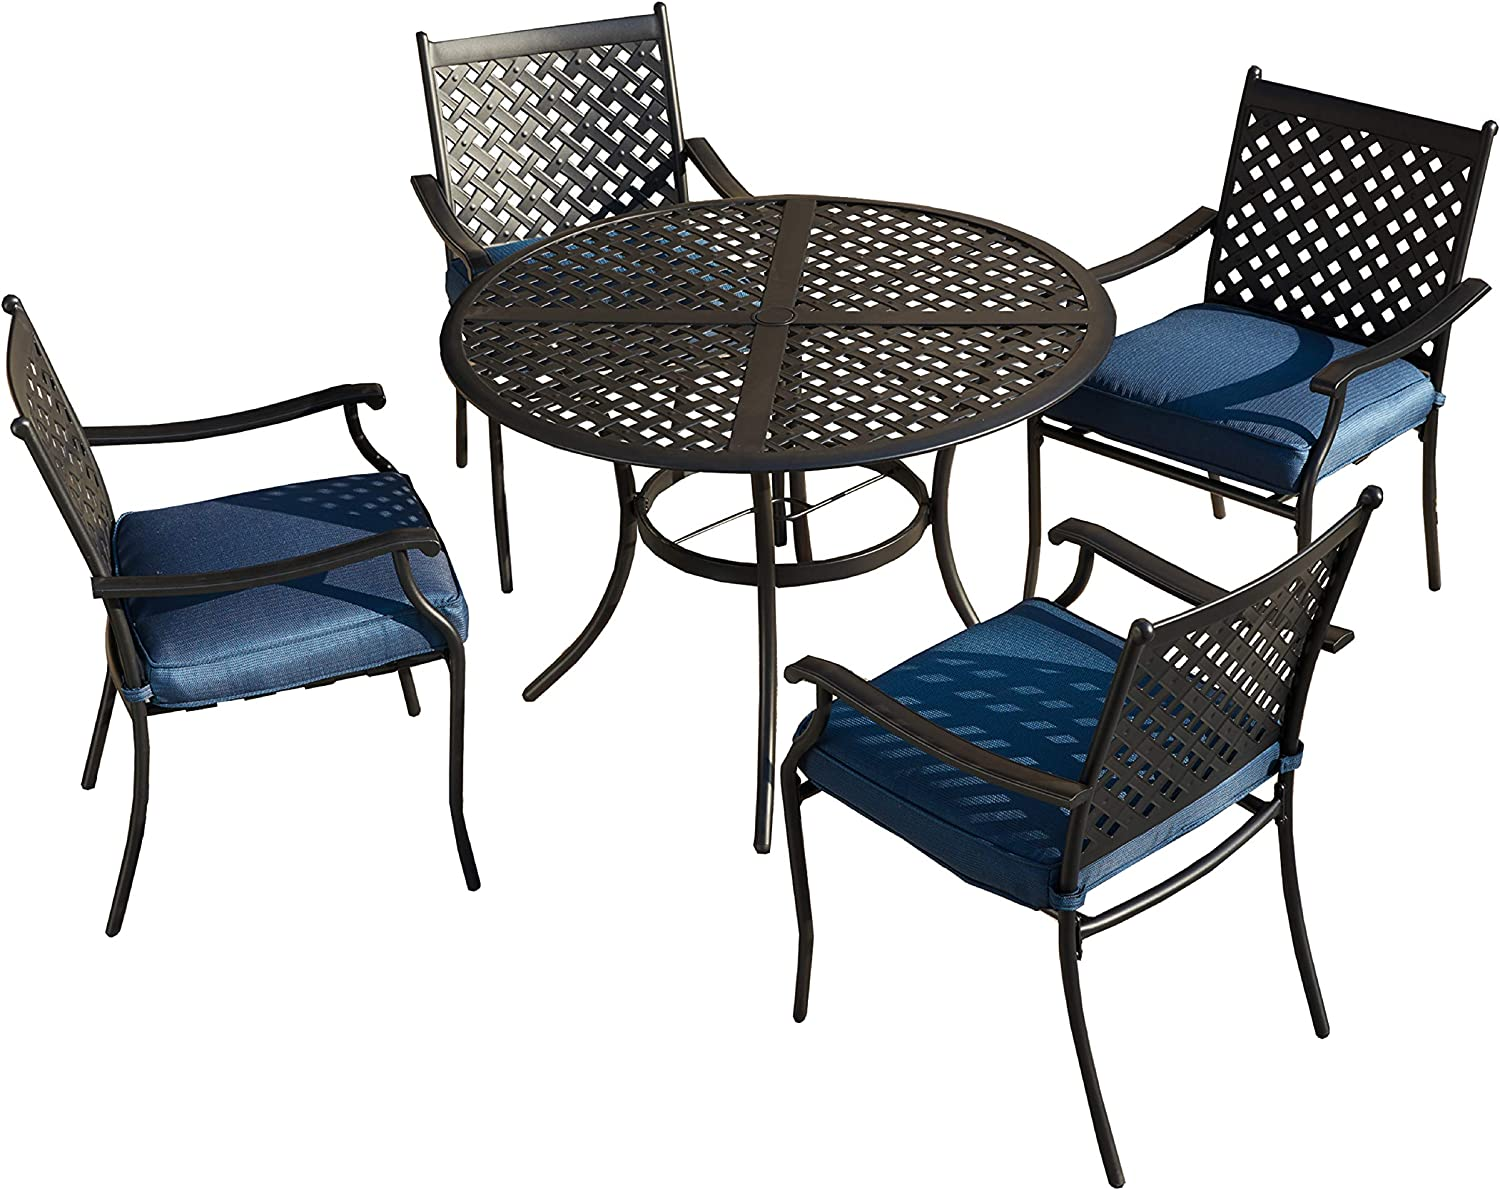 LOKATSE HOME 5 Piece Dining Outdoor Patio Furniture Metal Deck Outside Chairs and Round Table Sets with Umbrella Hole, Blue